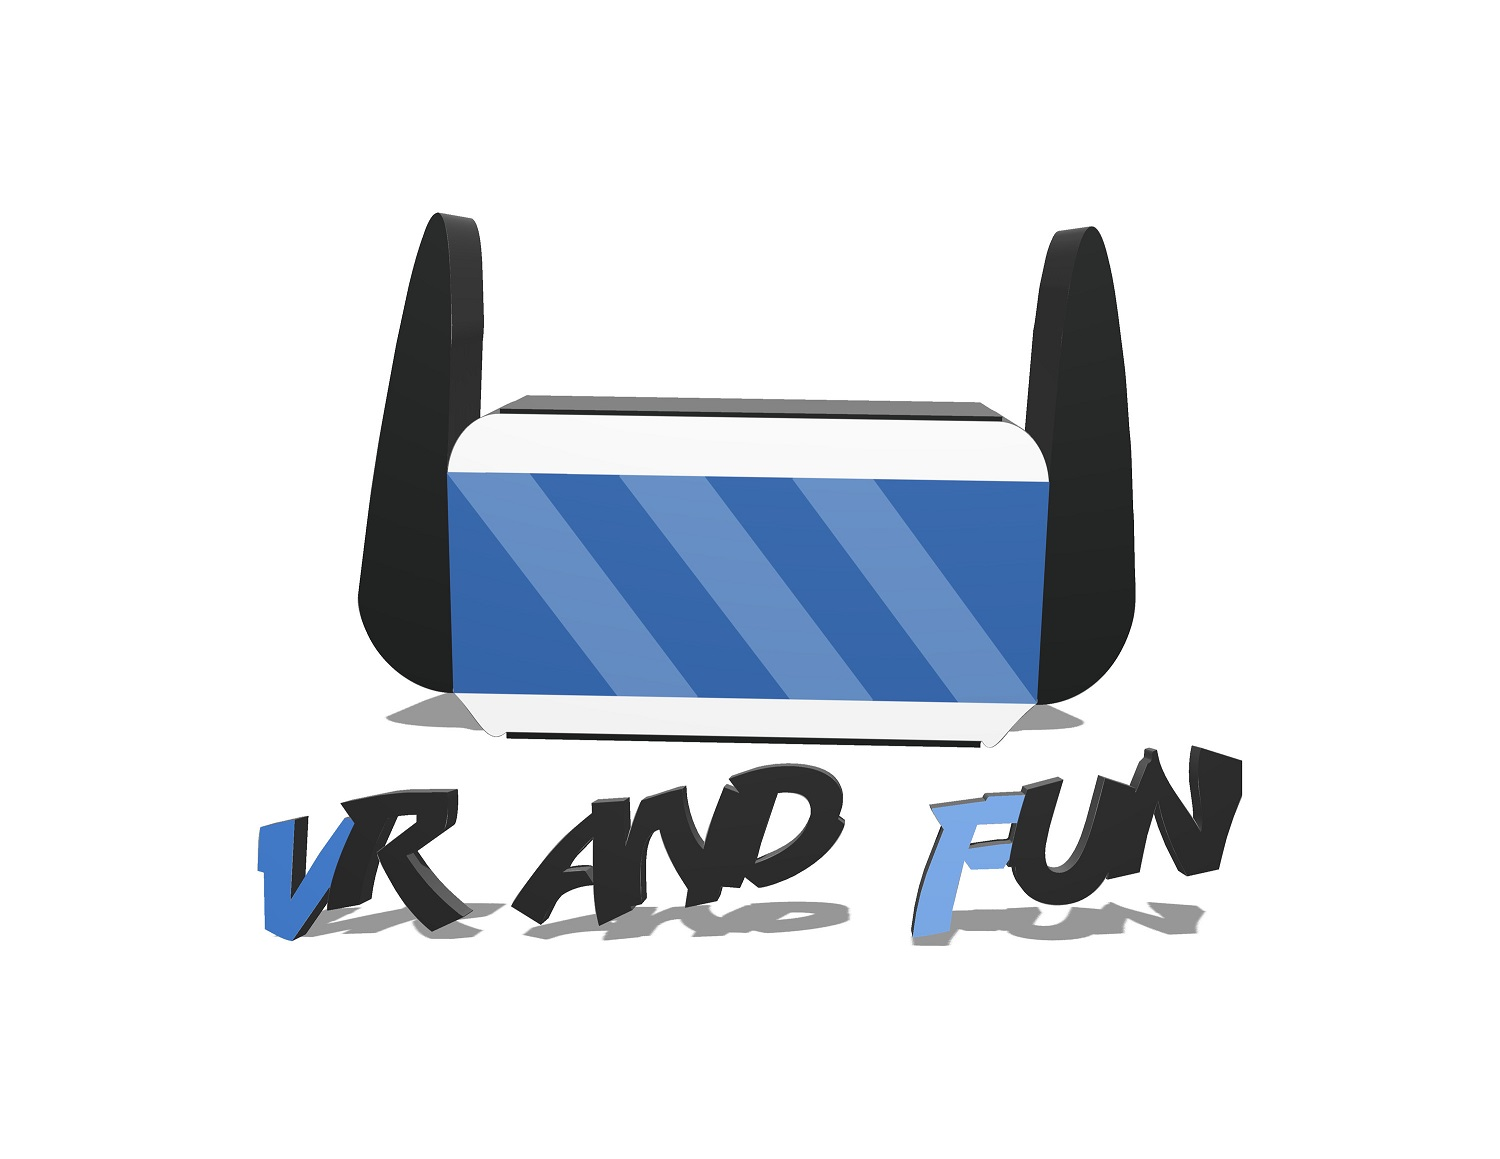 VR News, Games, And Reviews | VR & FUN